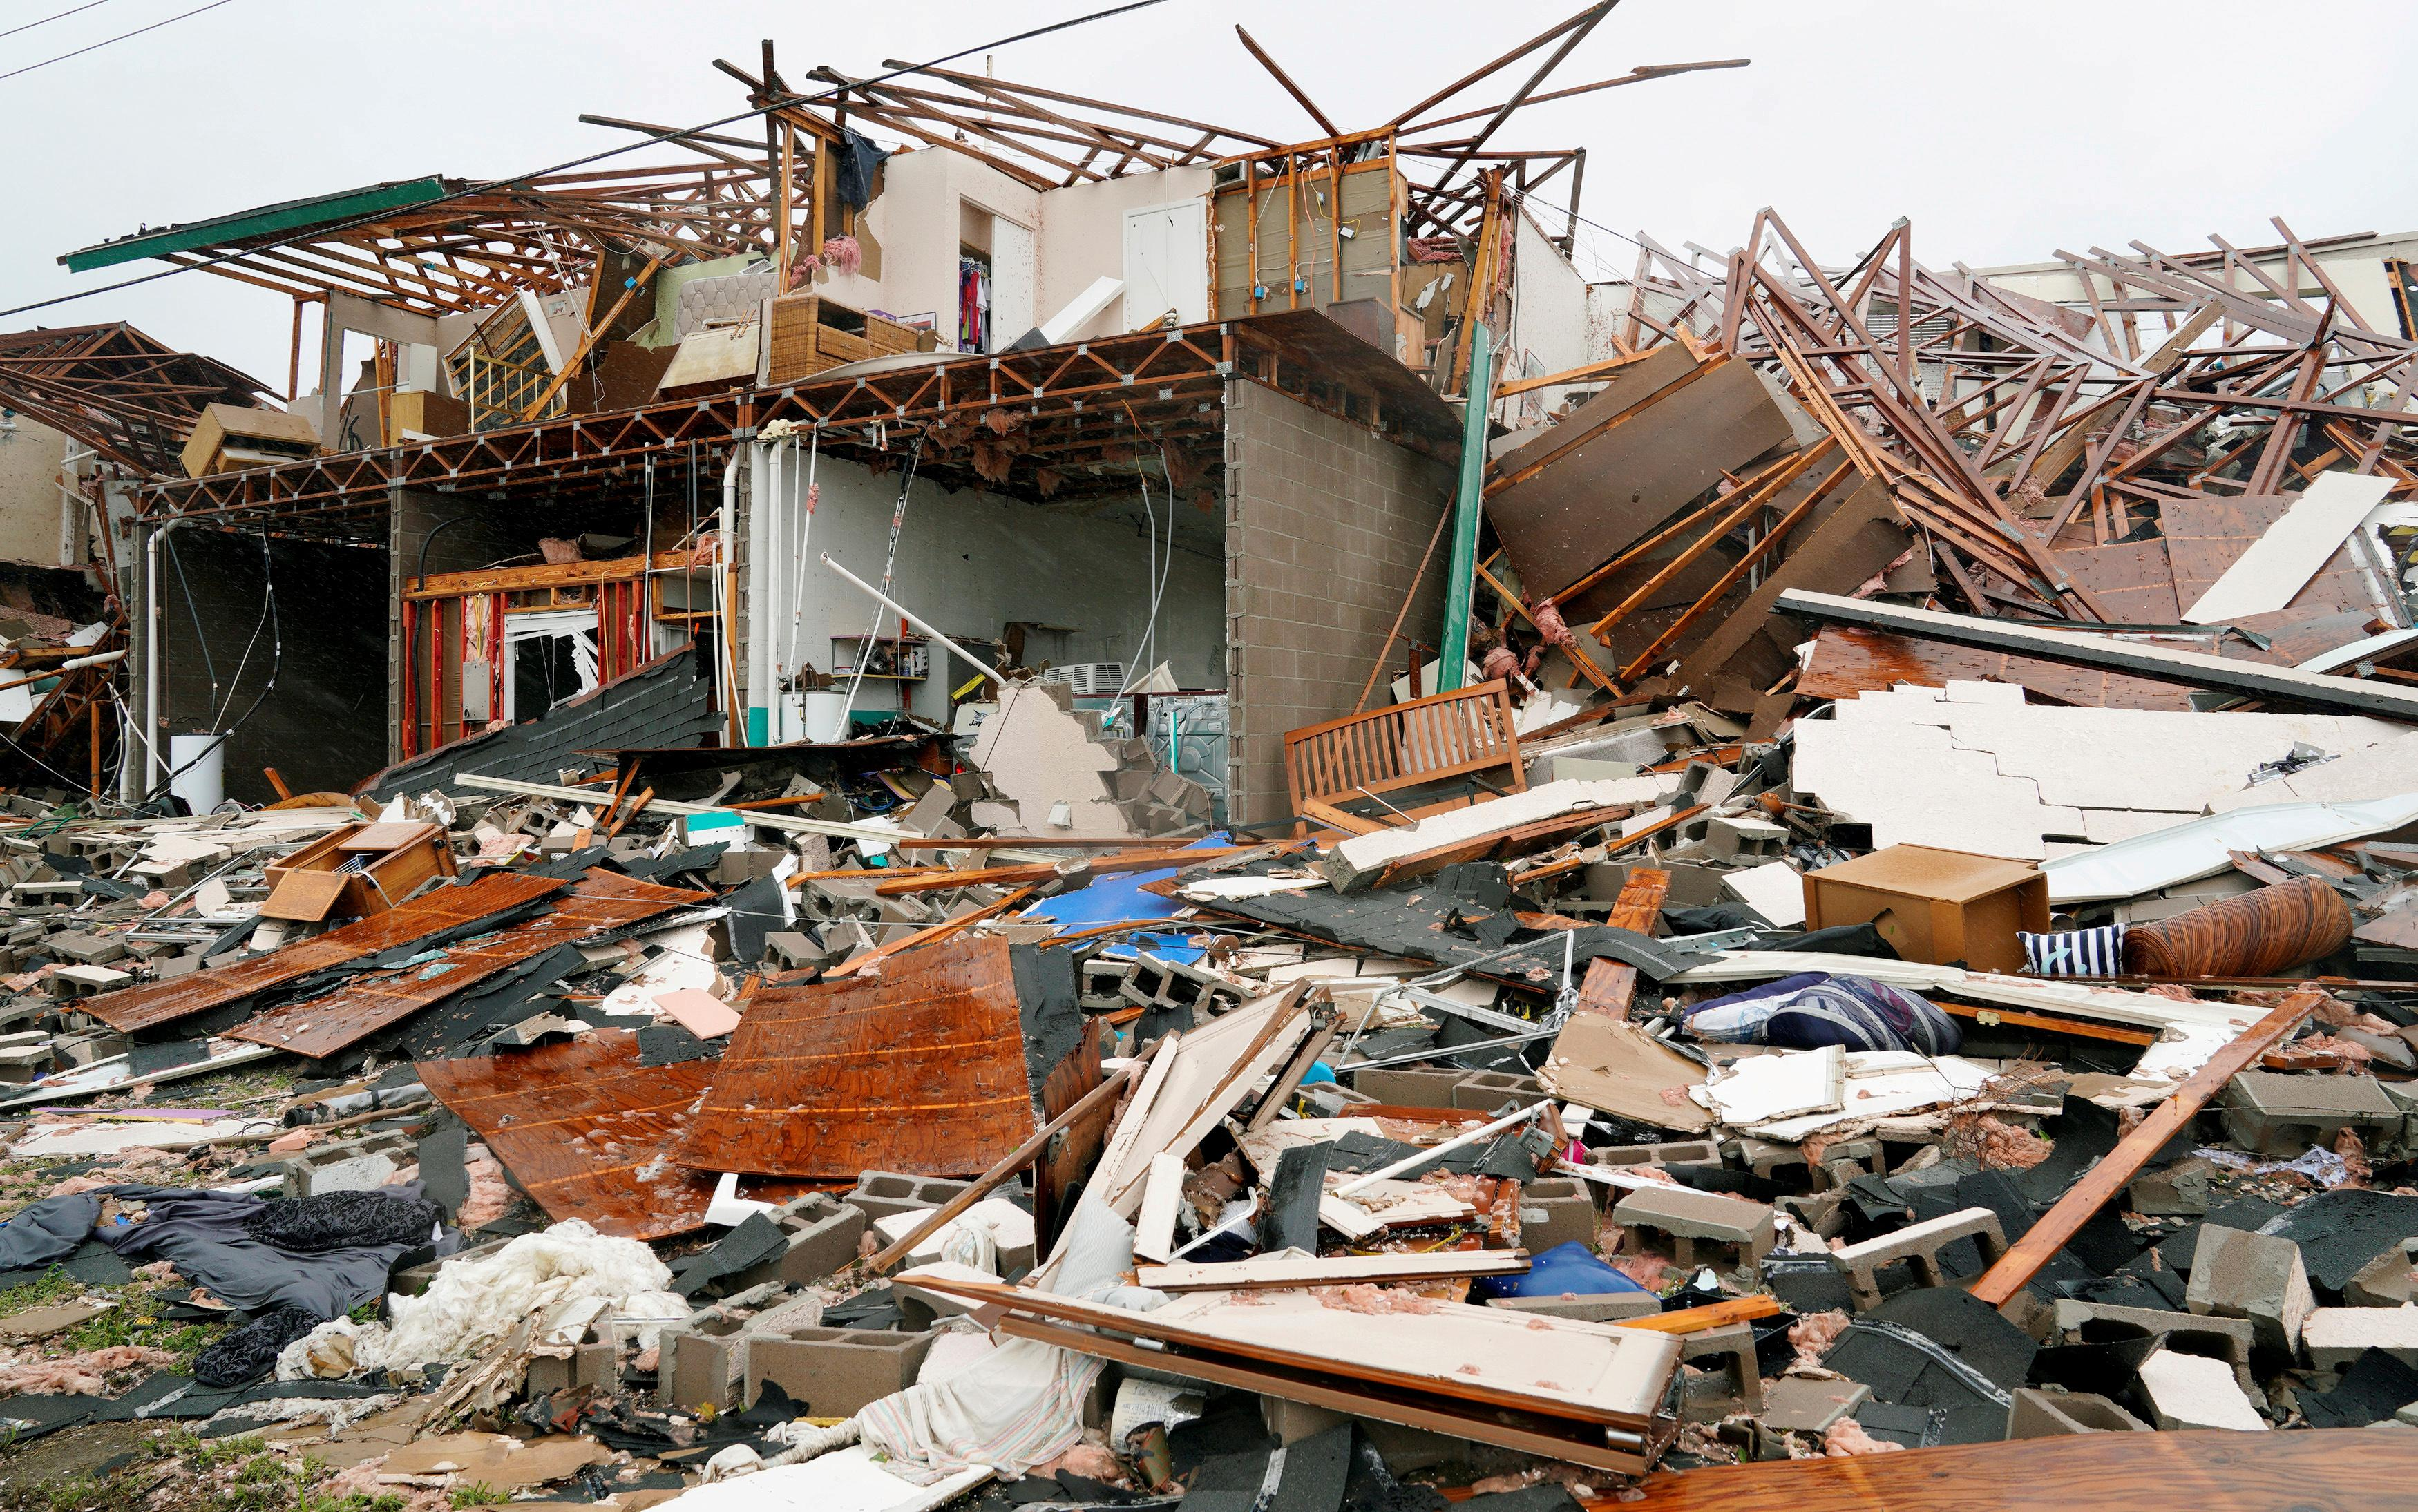 Natural Disasters: Hurricanes, Earthquakes Likely Unrelated Natural Disasters Hurricane